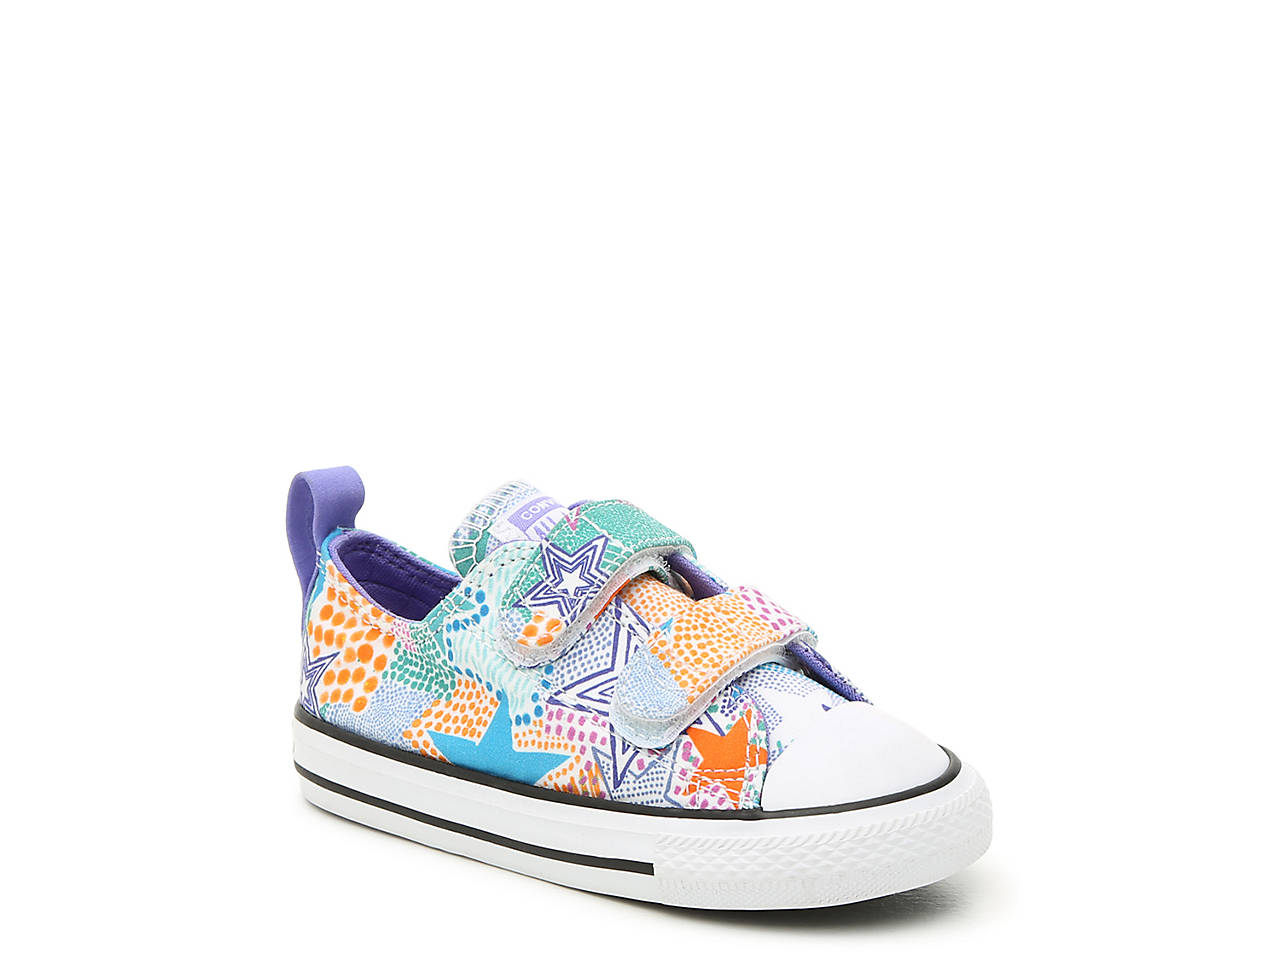 185d05e92555 Converse Chuck Taylor All Star Street Mosaic Infant   Toddler ...